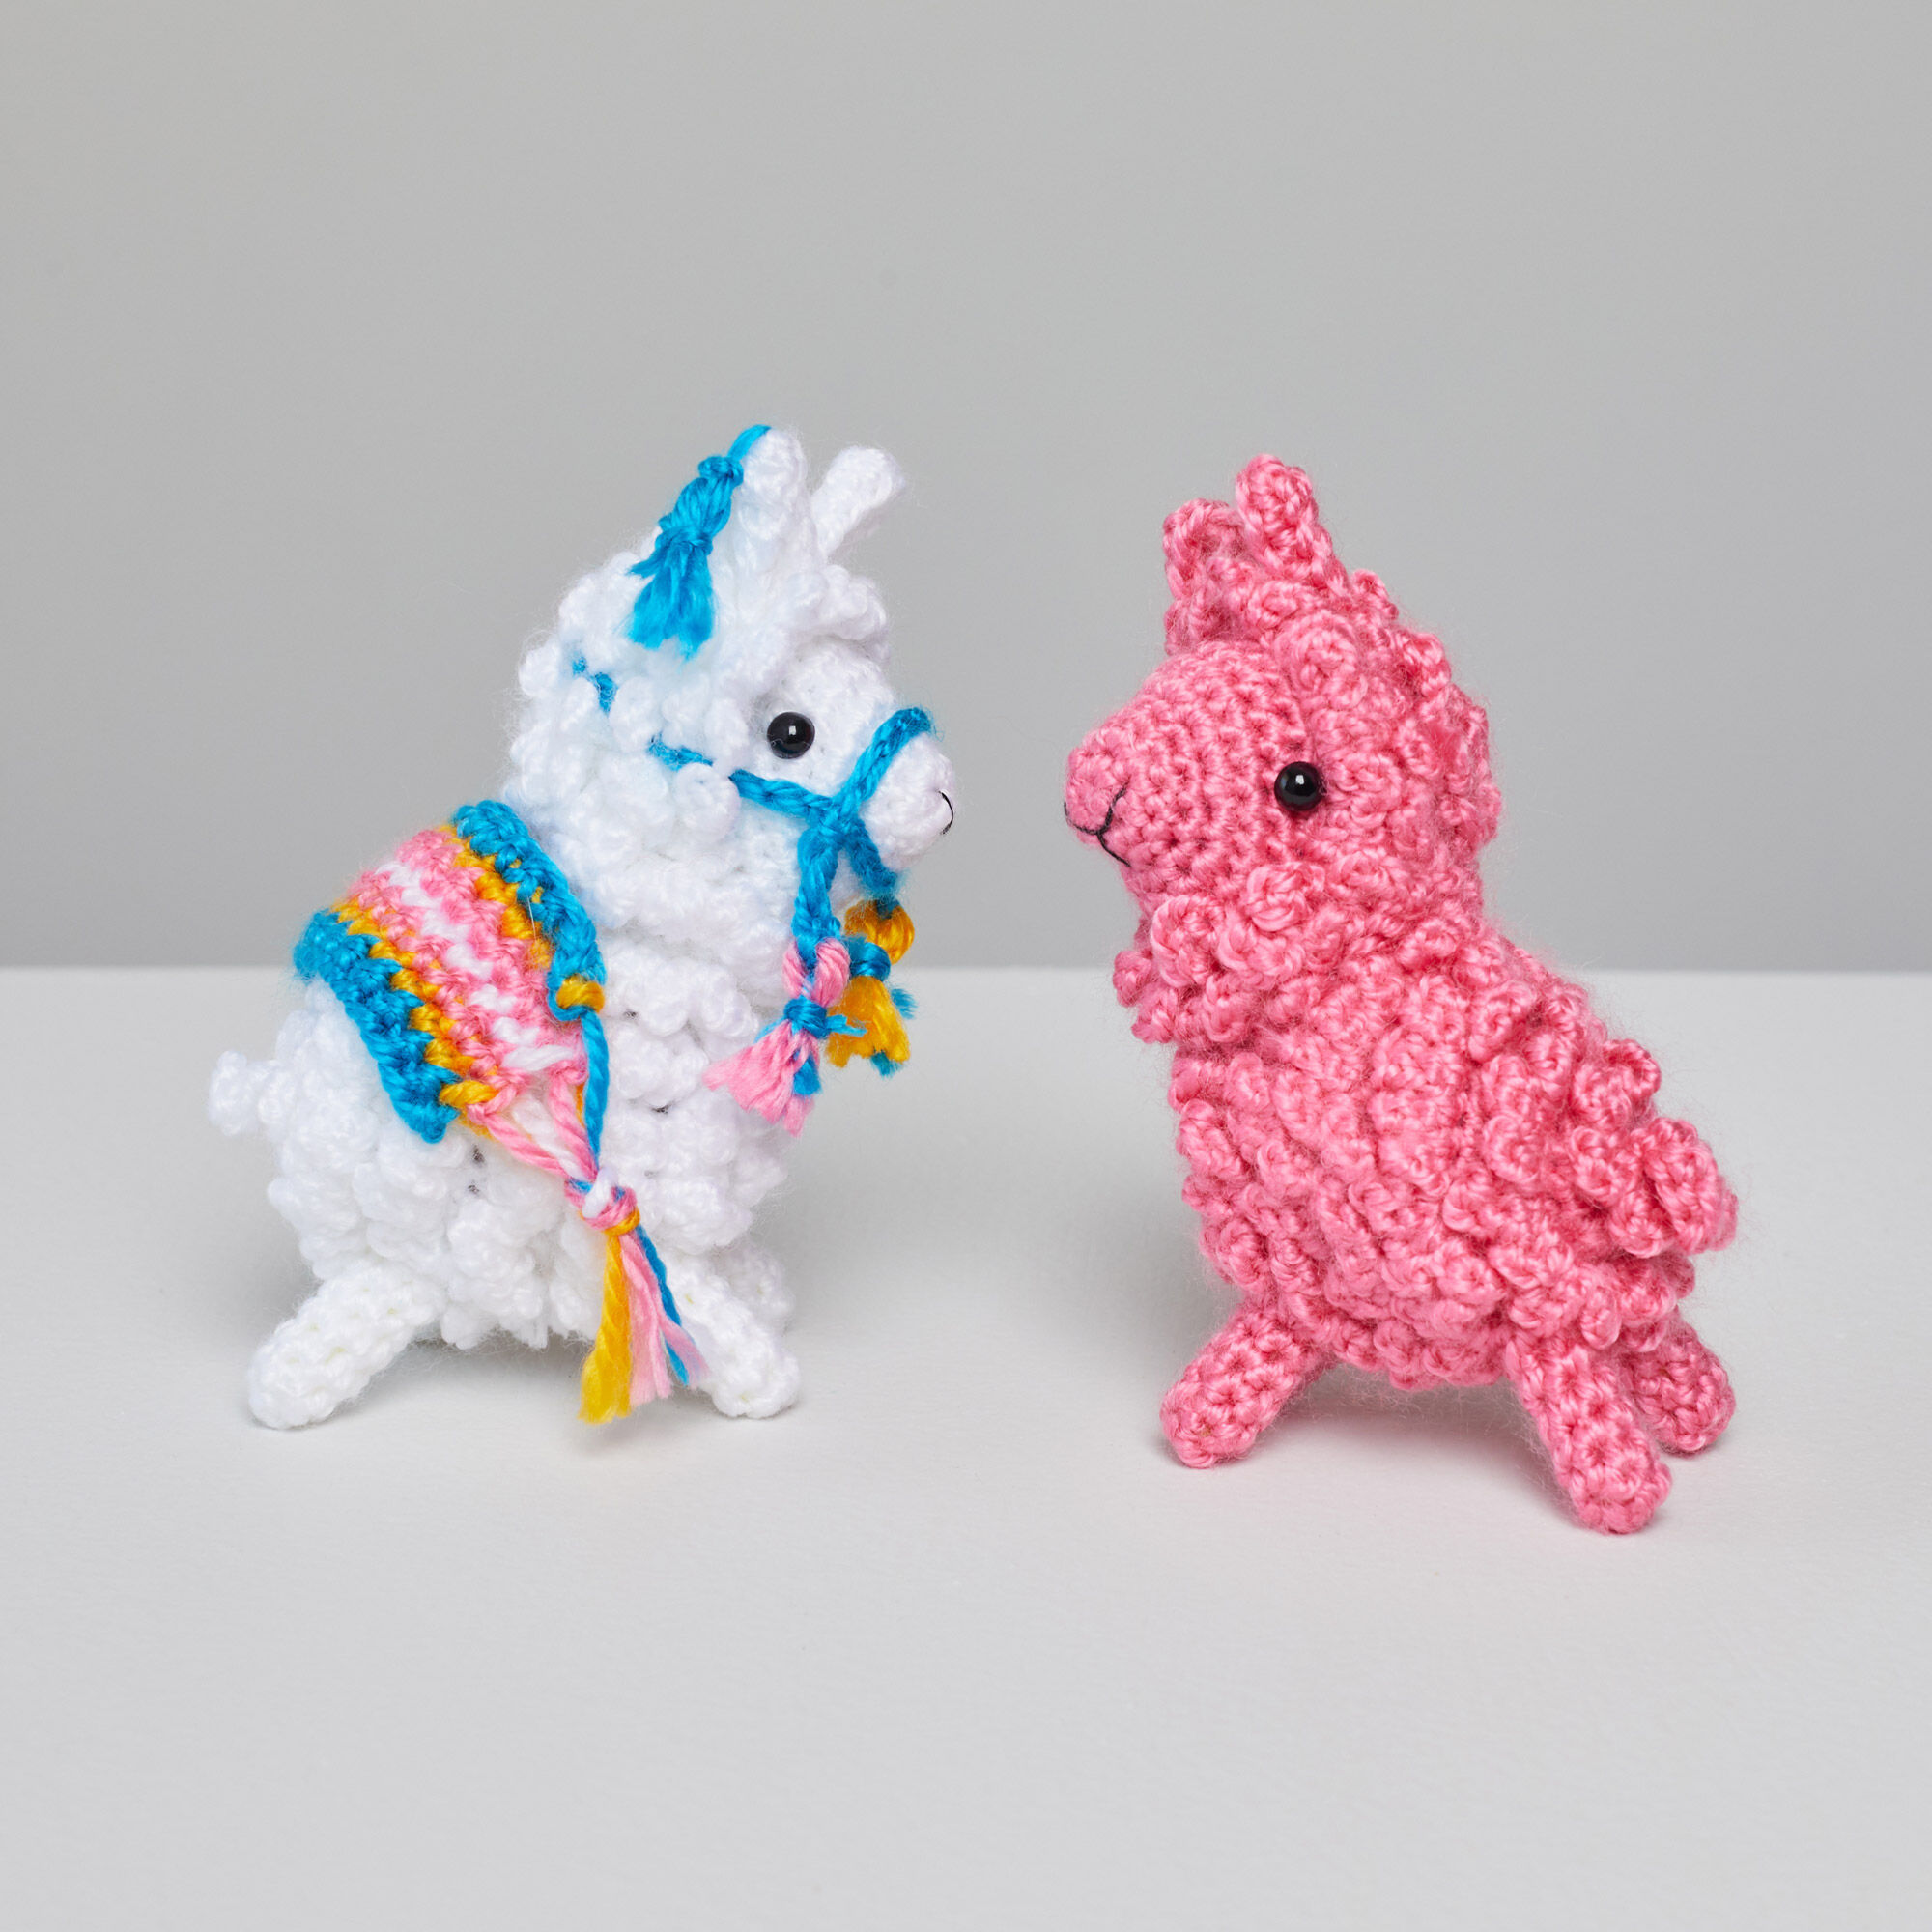 Alpaca amigurumi tutorial - YouTube | 2000x2000